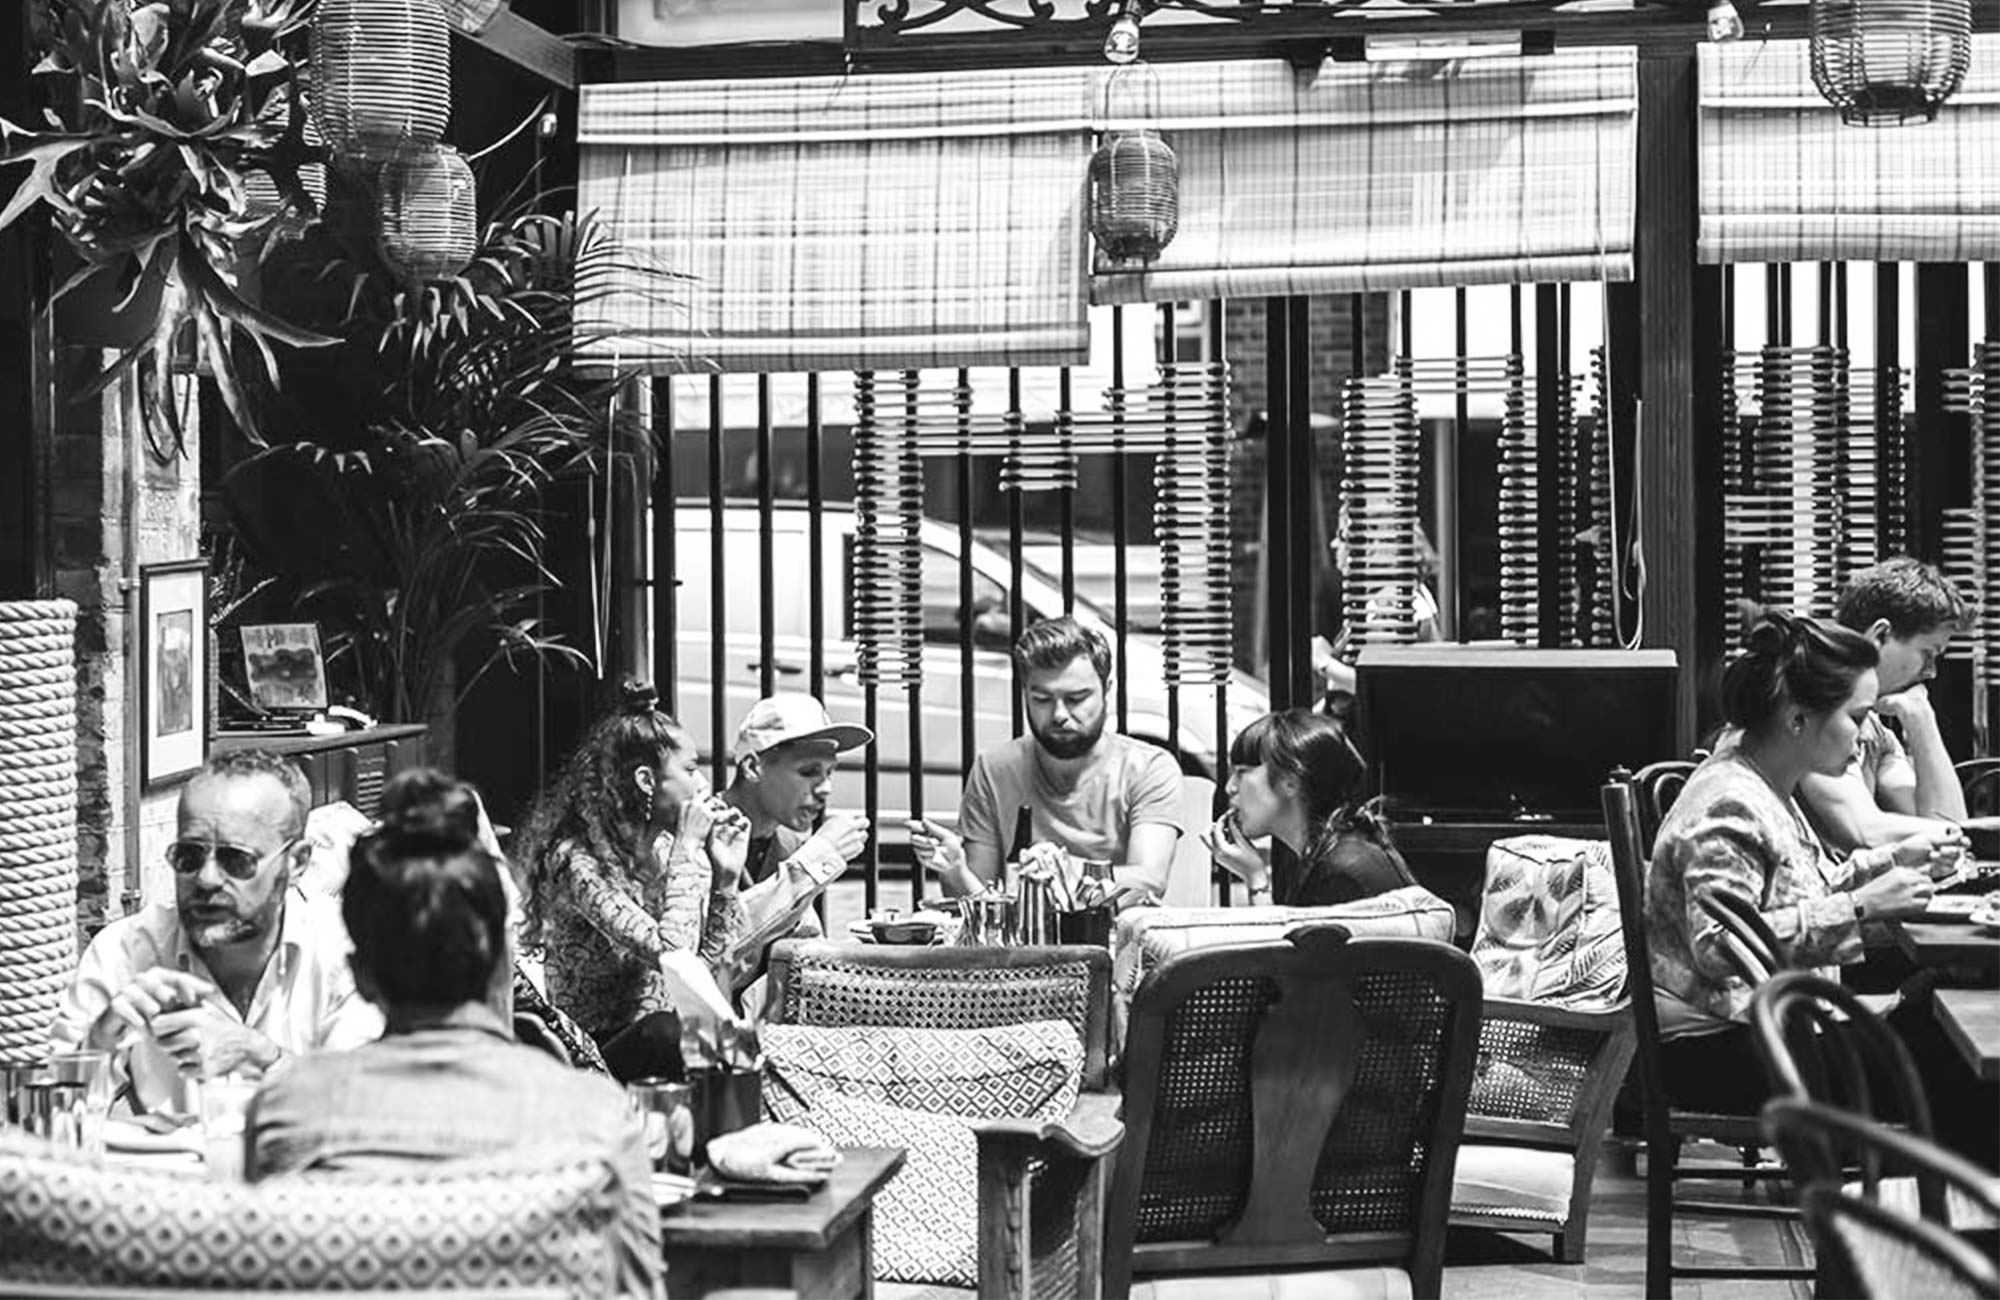 People outdoor dining at Dishoom Shoreditch on the verandah